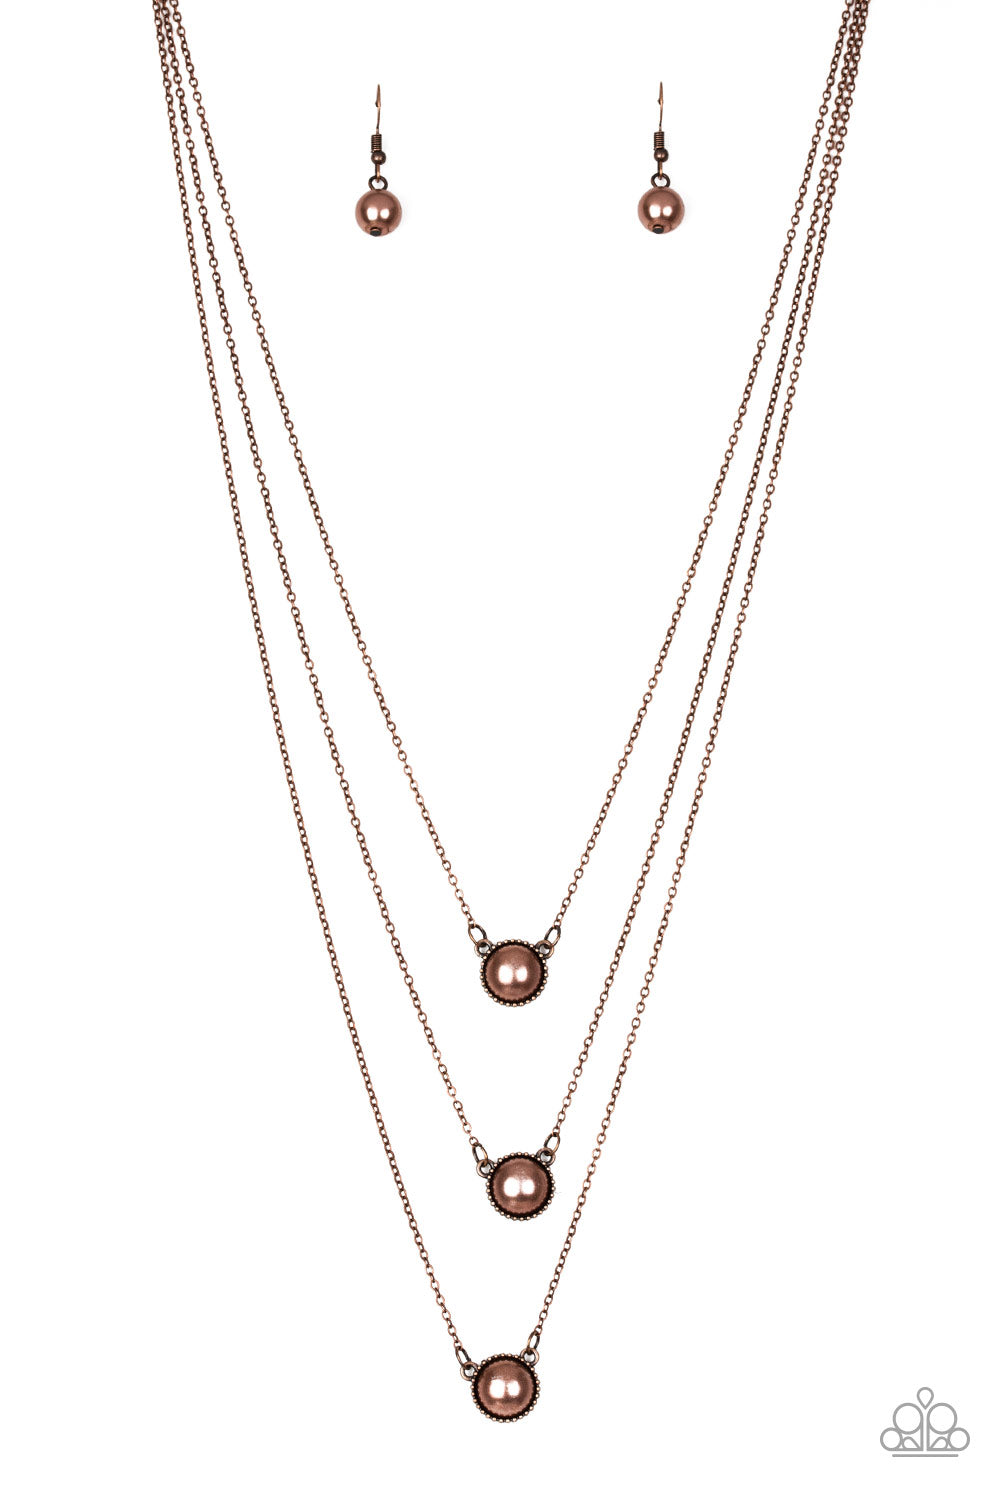 five-dollar-jewelry-a-love-for-luster-copper-necklace-paparazzi-accessories